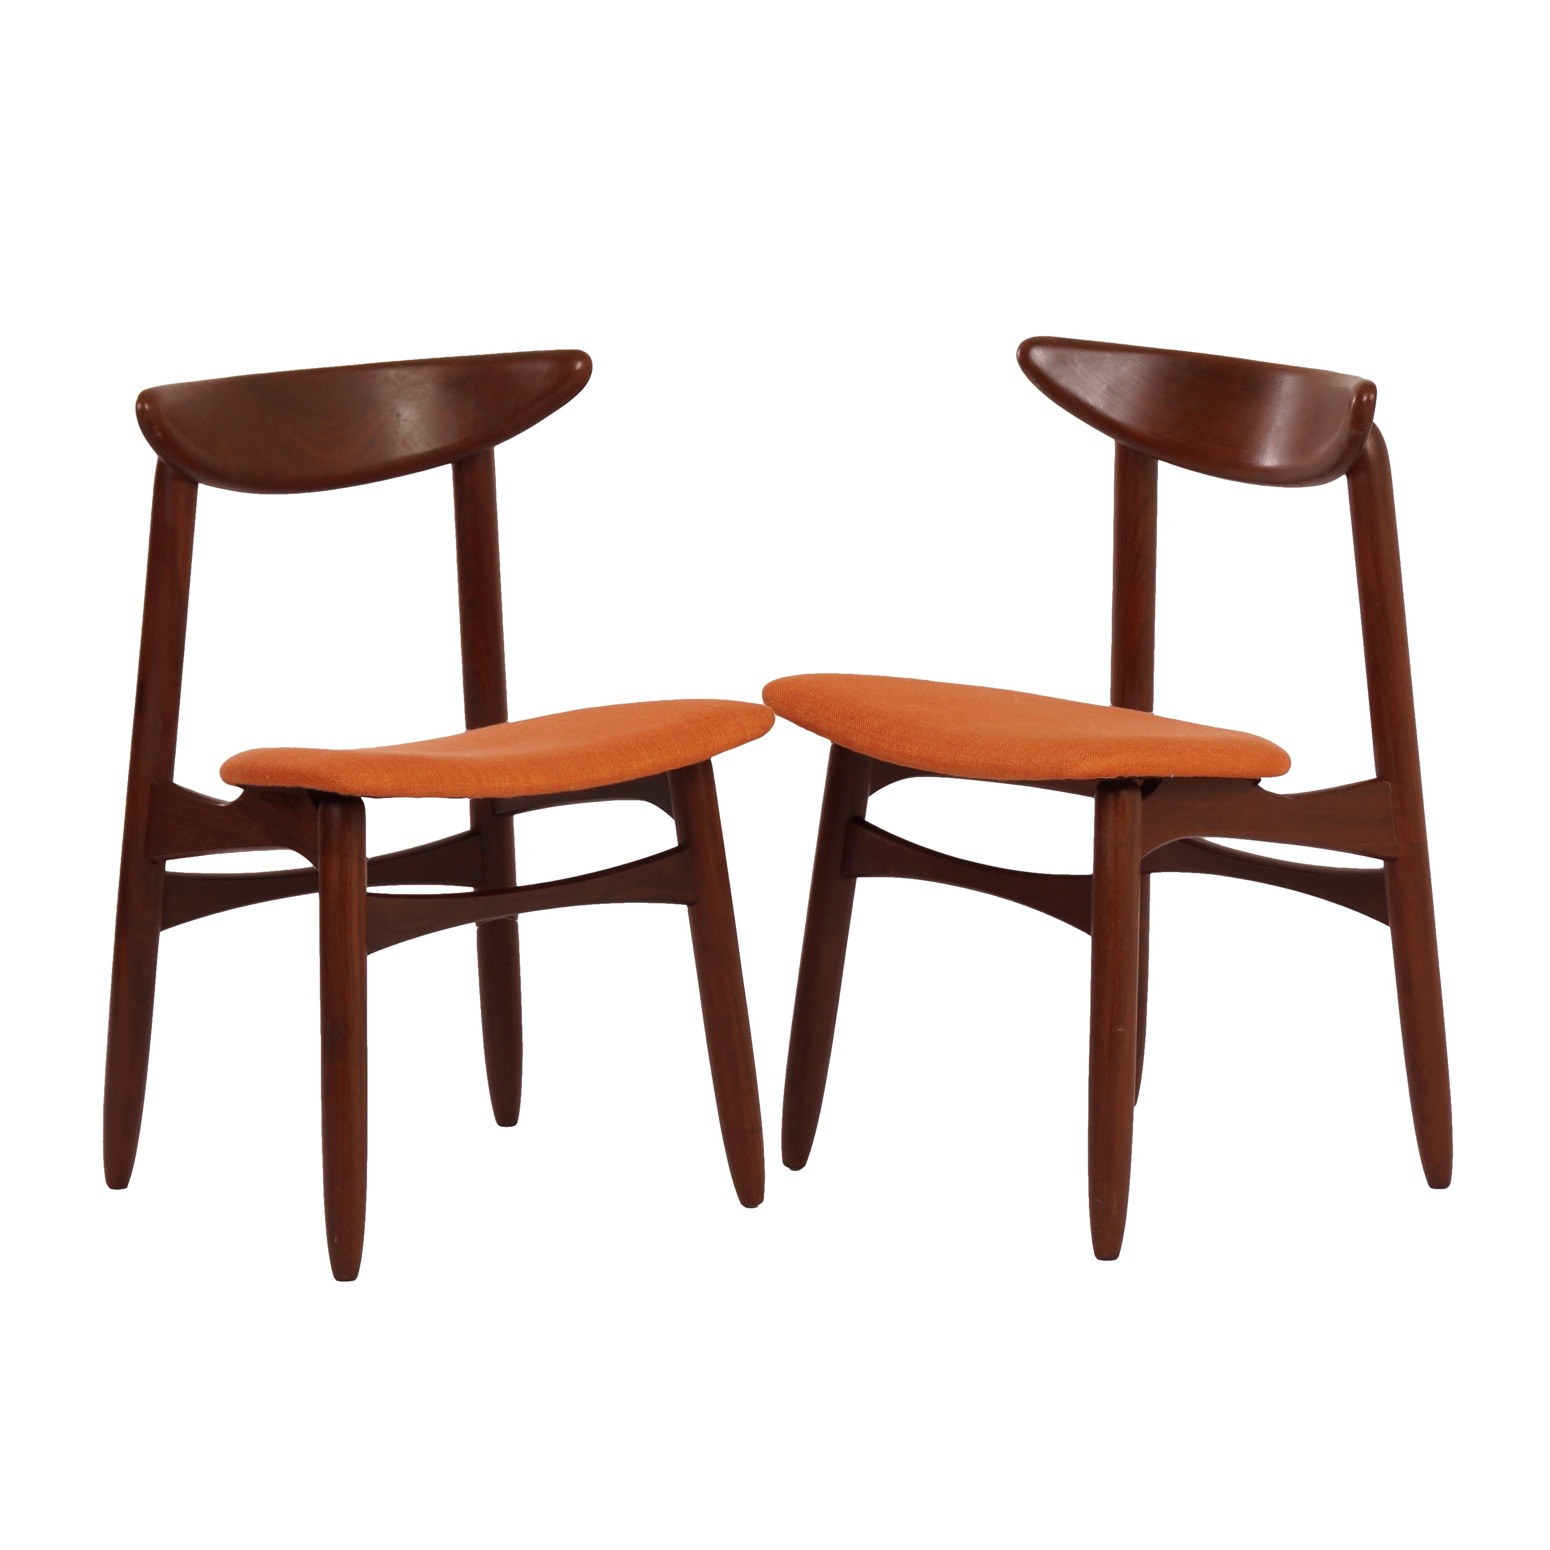 Danish Dining Chairs in Teak and orange fabric, 1960s - Set of 2